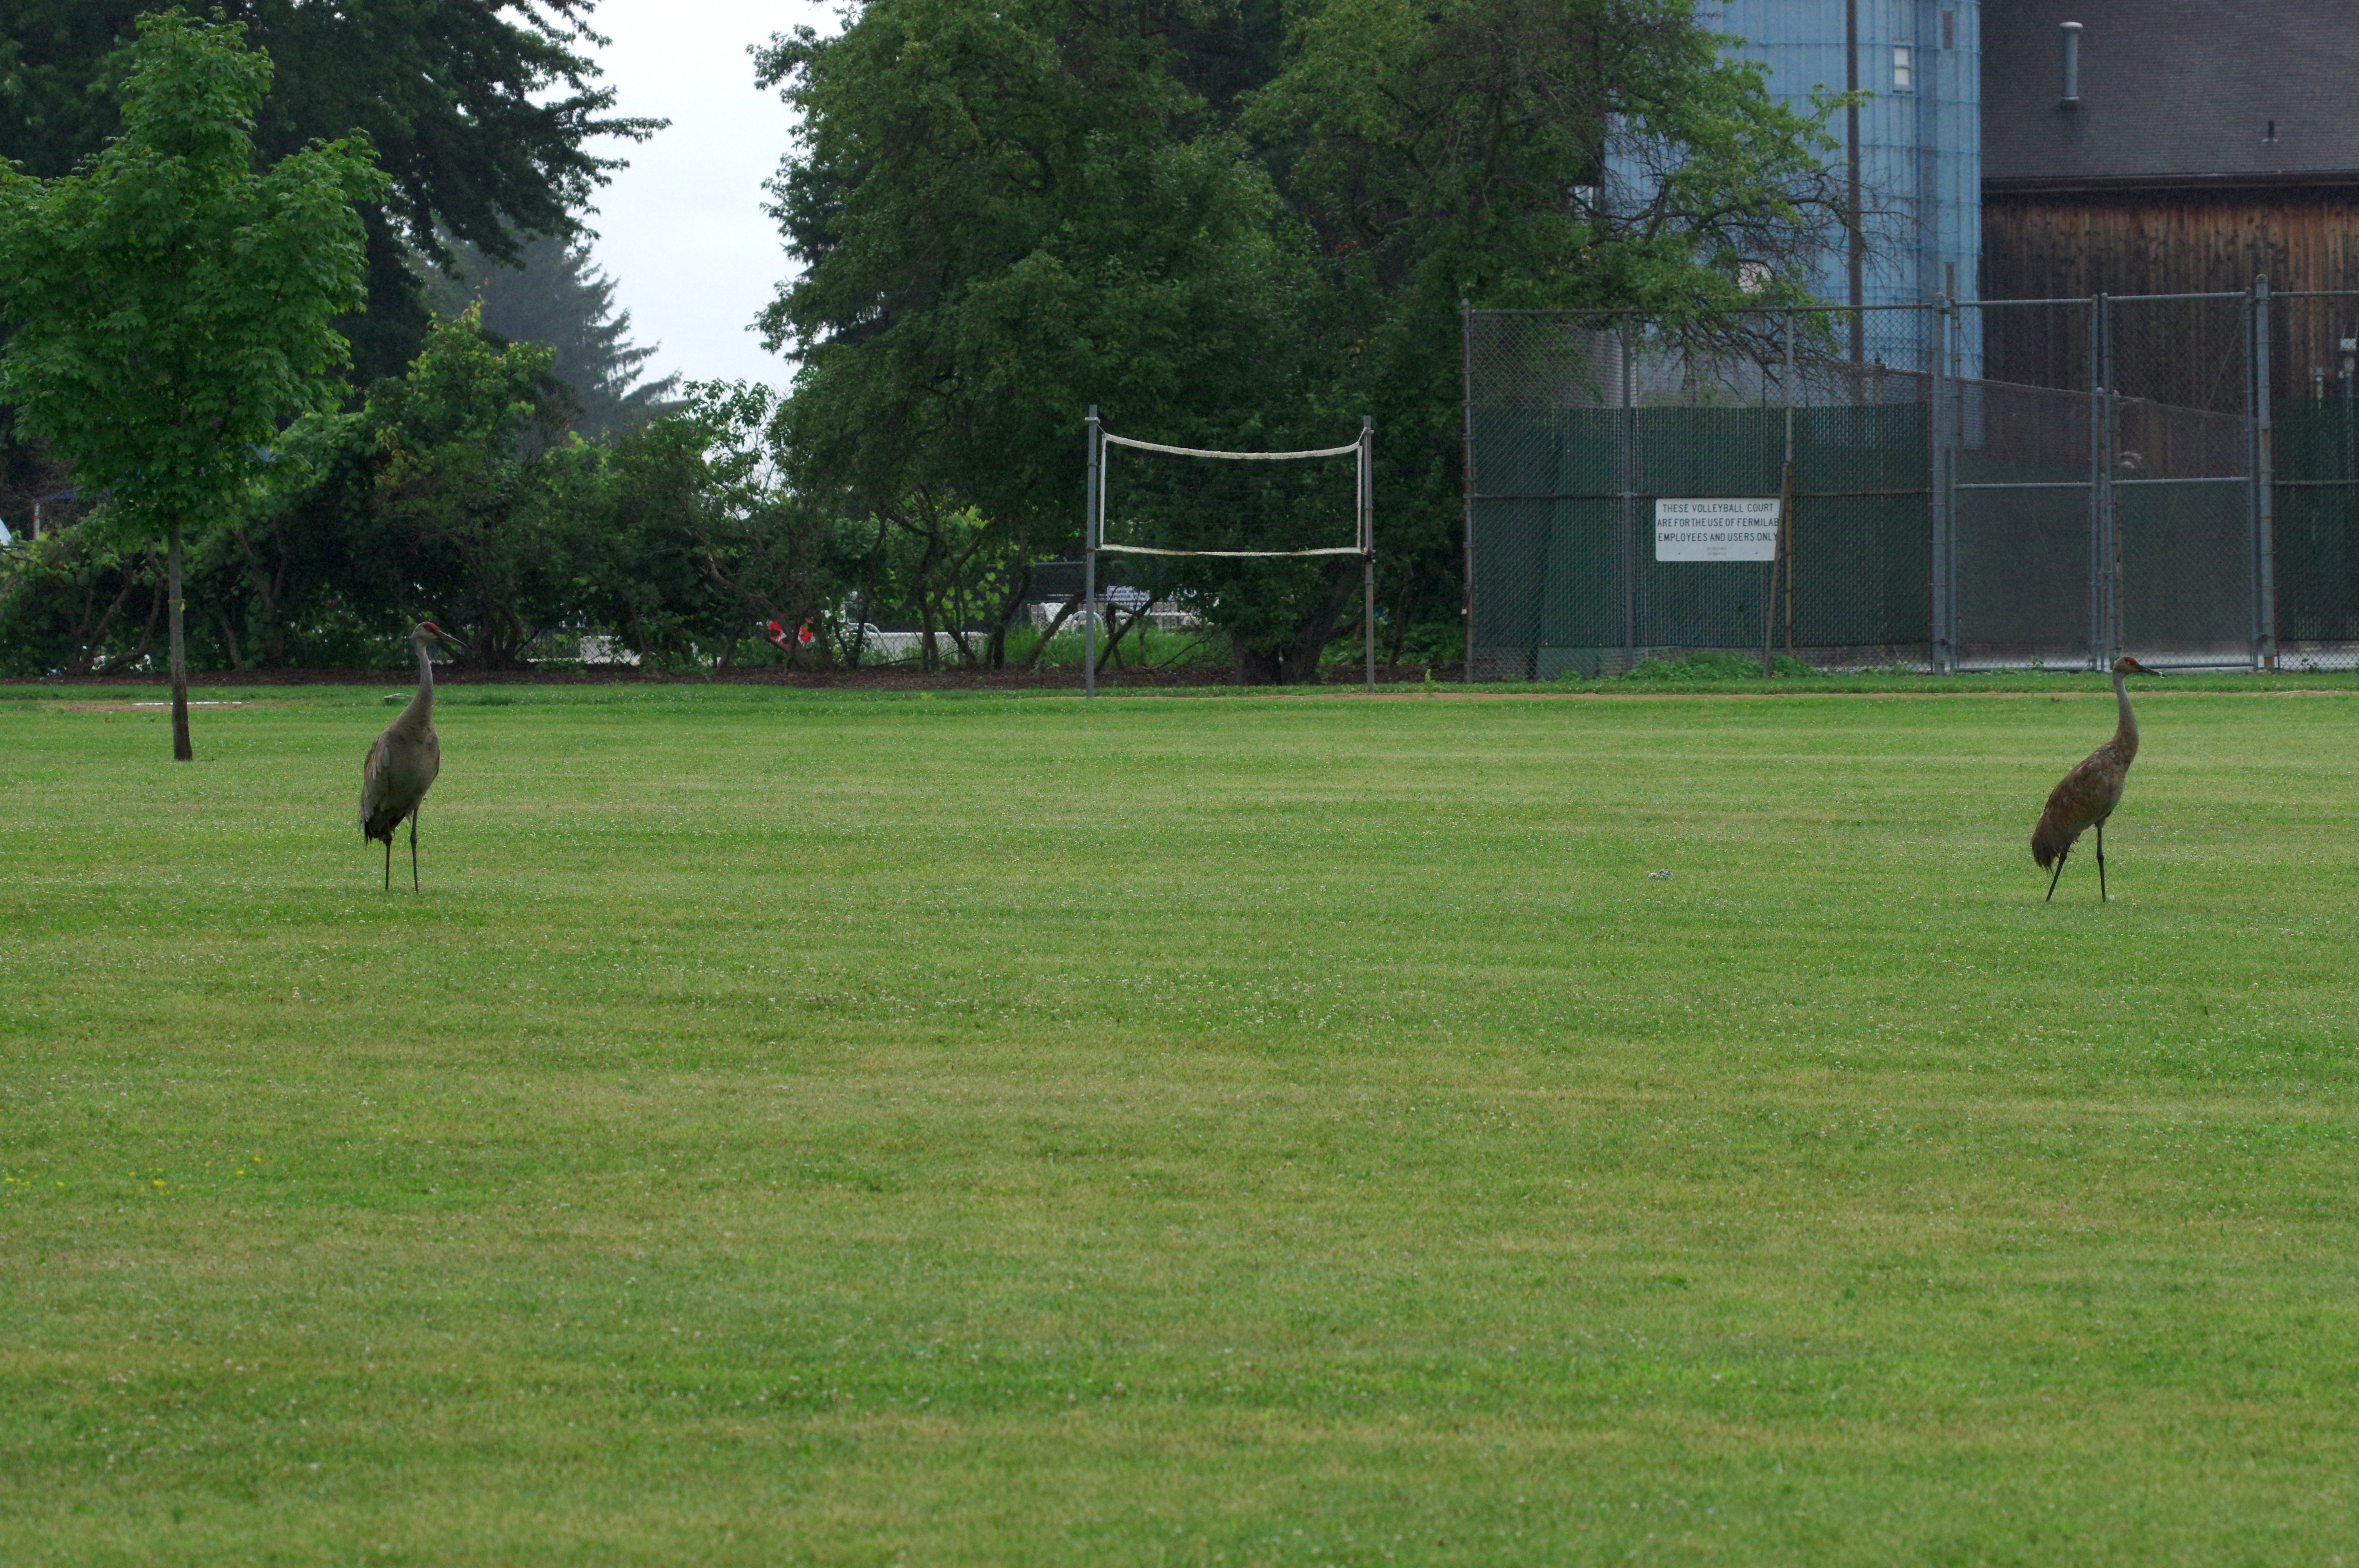 On a wet evening, a pair of sandhill cranes visit the softball field in the Village. Photo: Dan Johnson